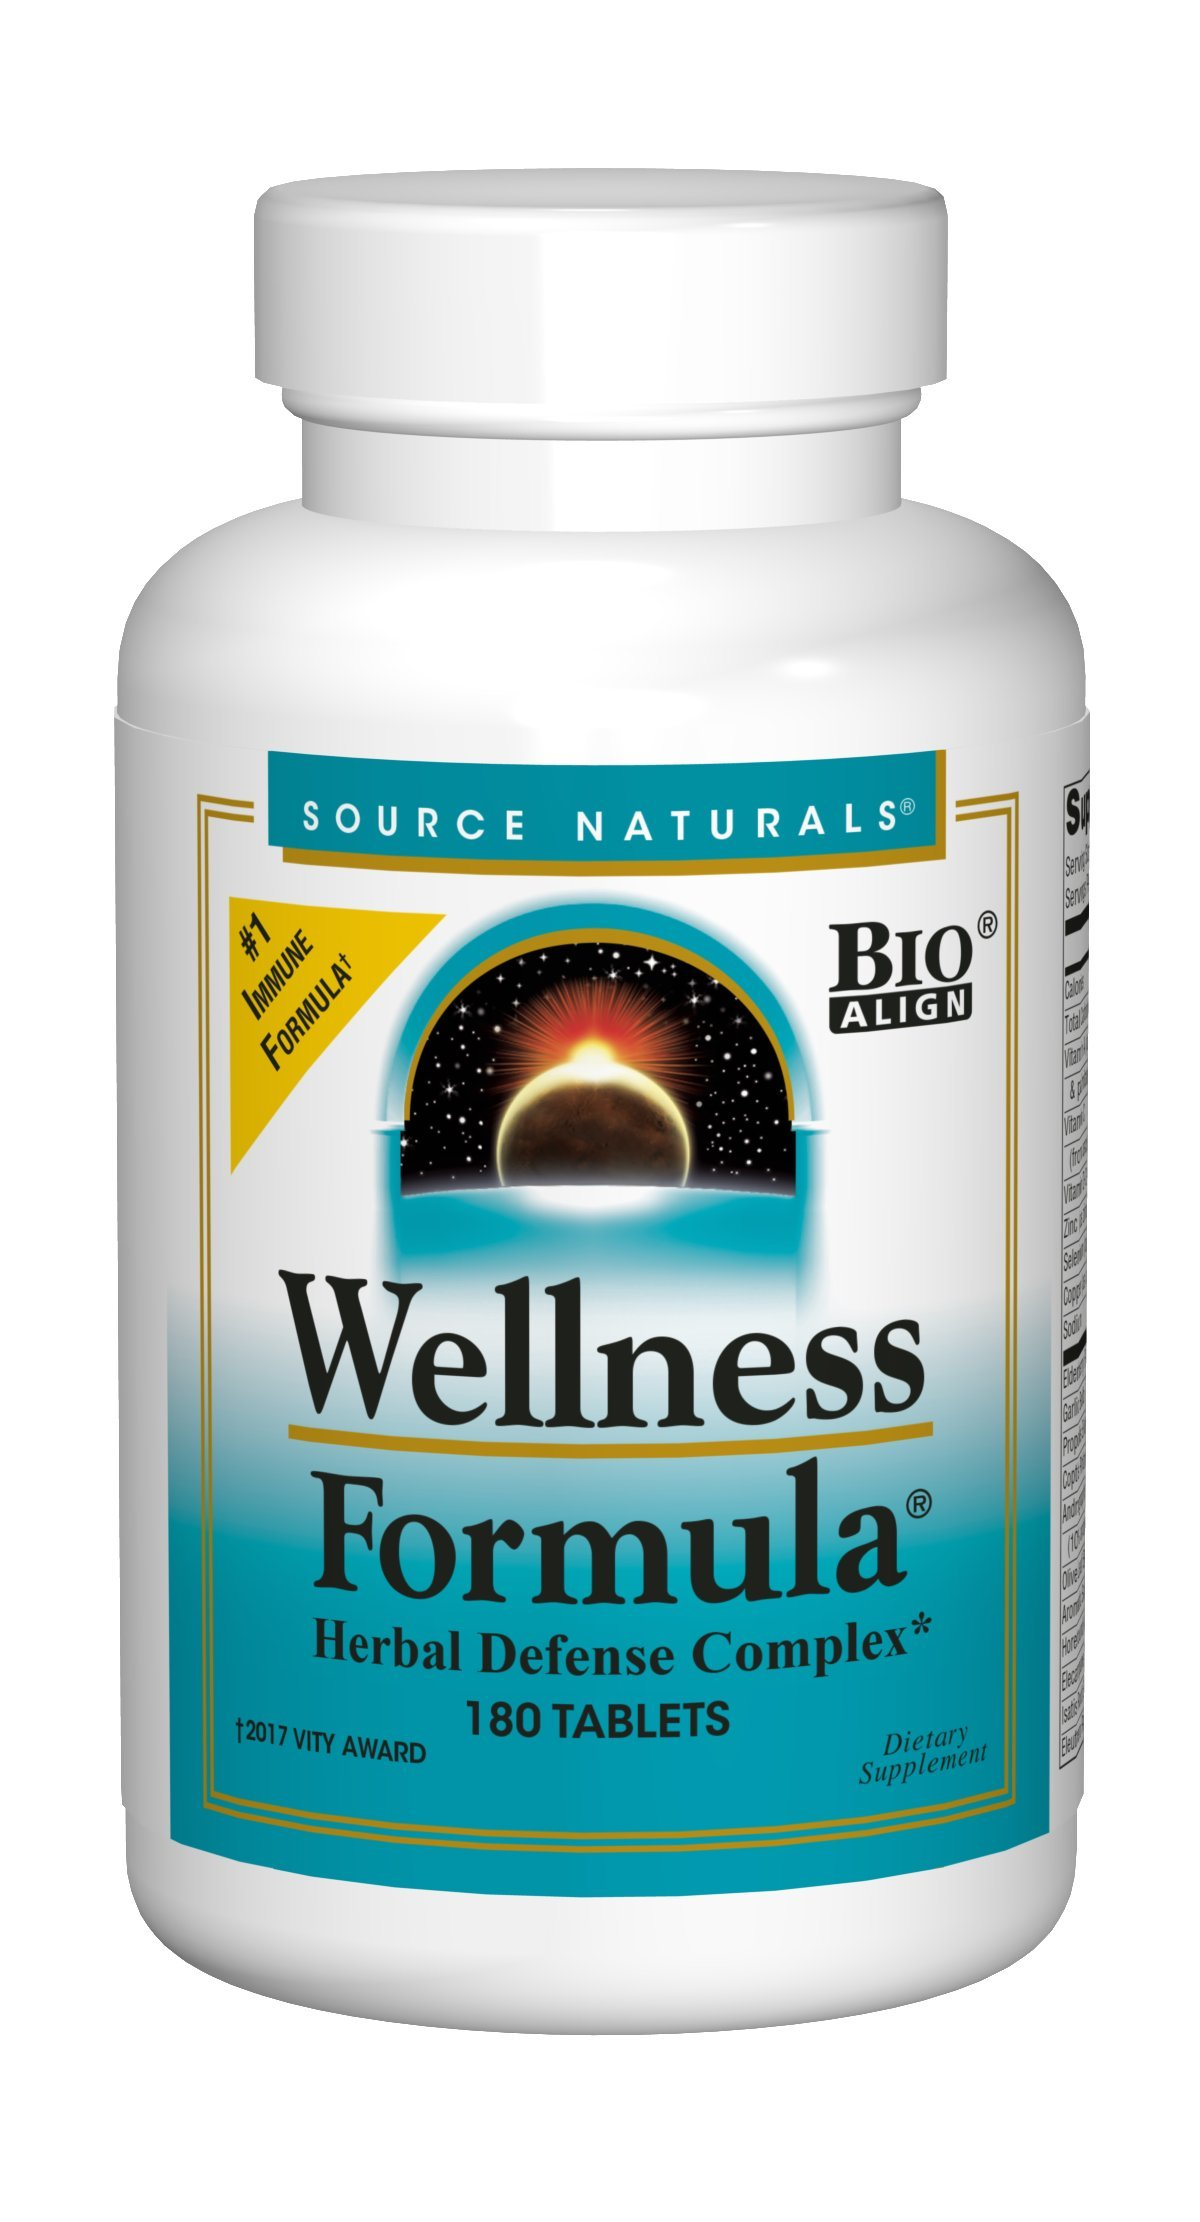 Source Naturals Wellness Formula Herbal Defense Complex Supplement, 180 Count